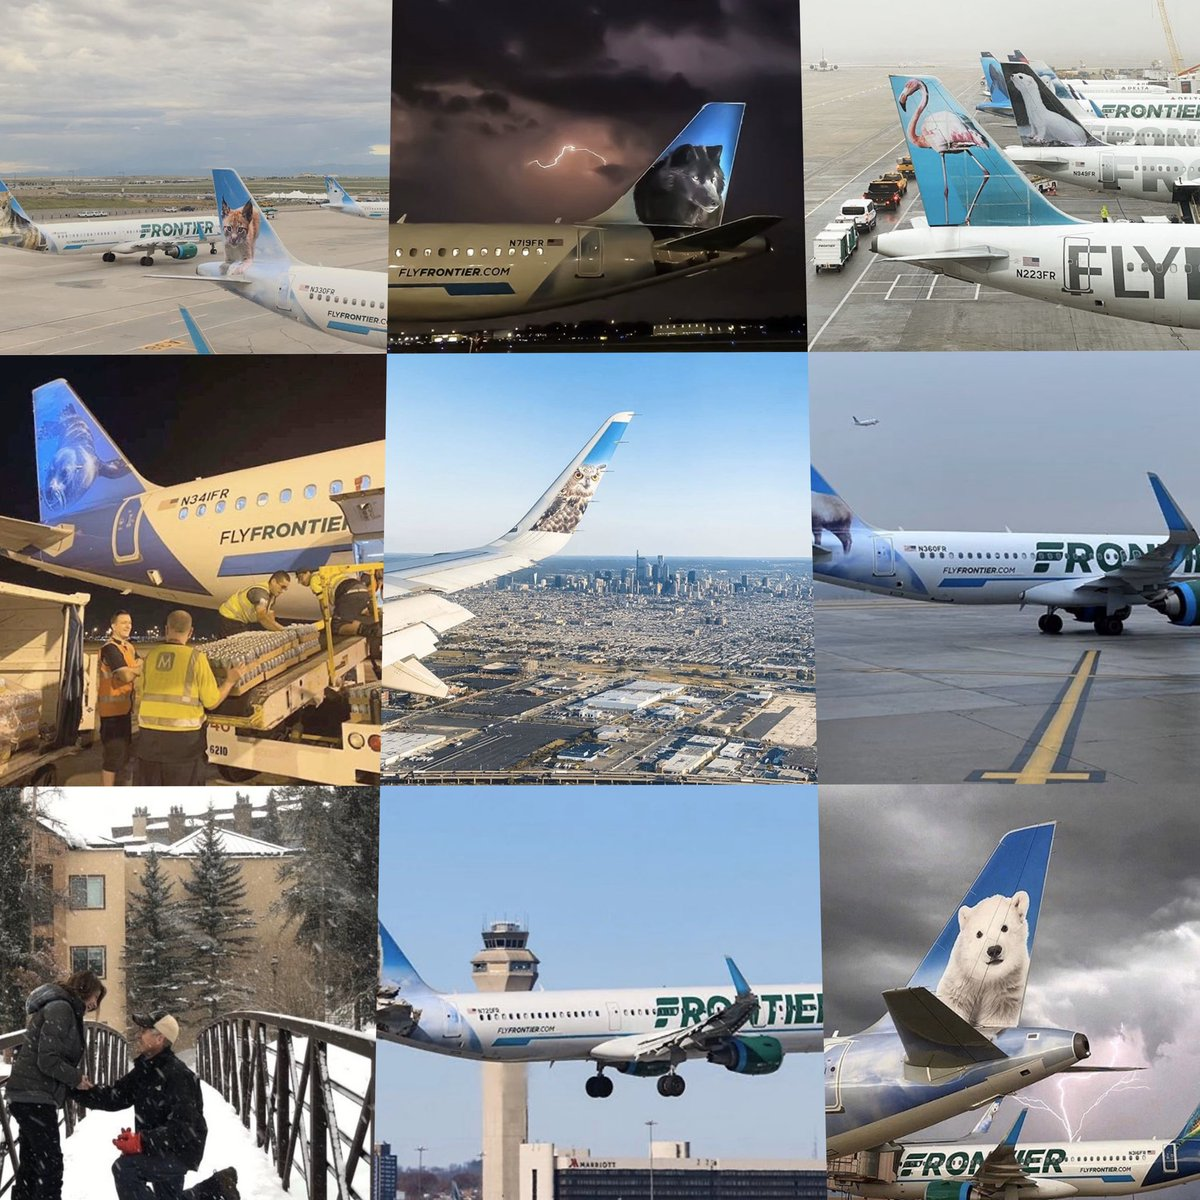 frontier airlines on twitter we were pretty fawn ed of 2019 thank you for making it an over whale mingly great year here s to 2020 flyfrontier frontierairlines herewithfrontier bestnine https t co xms1cvmwss twitter